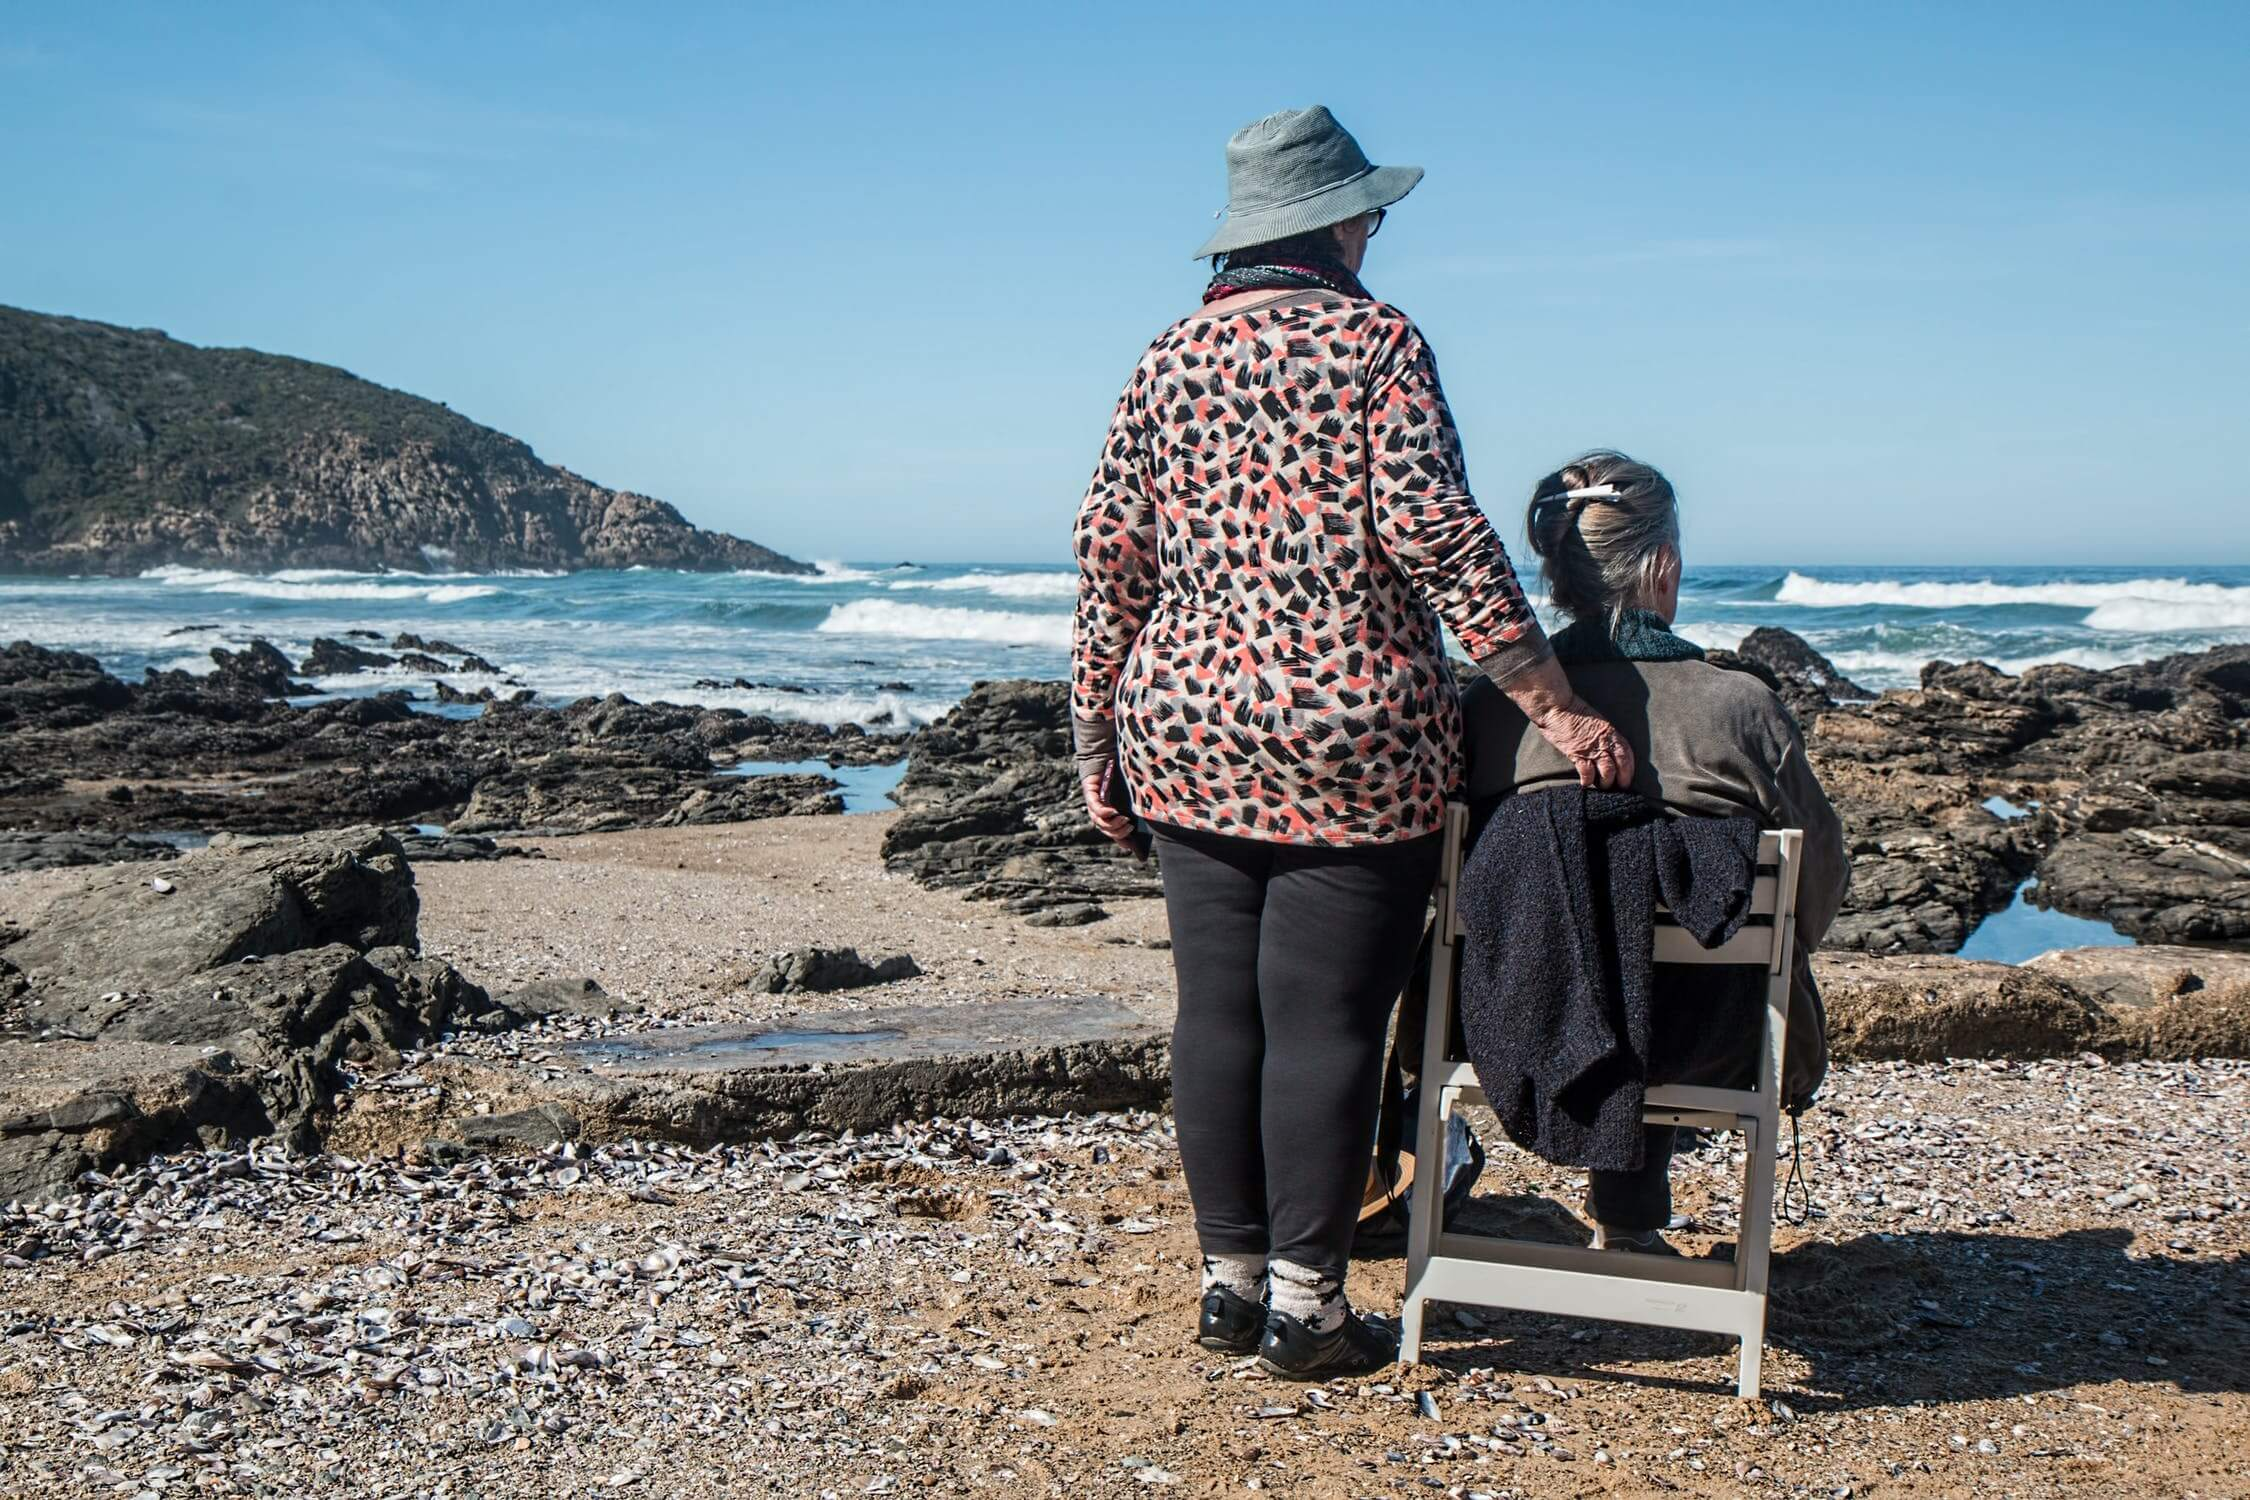 A woman standing next to her friend who is sitting and watching the ocean. Exercise and staying busy is helpful in preventing sundowning.